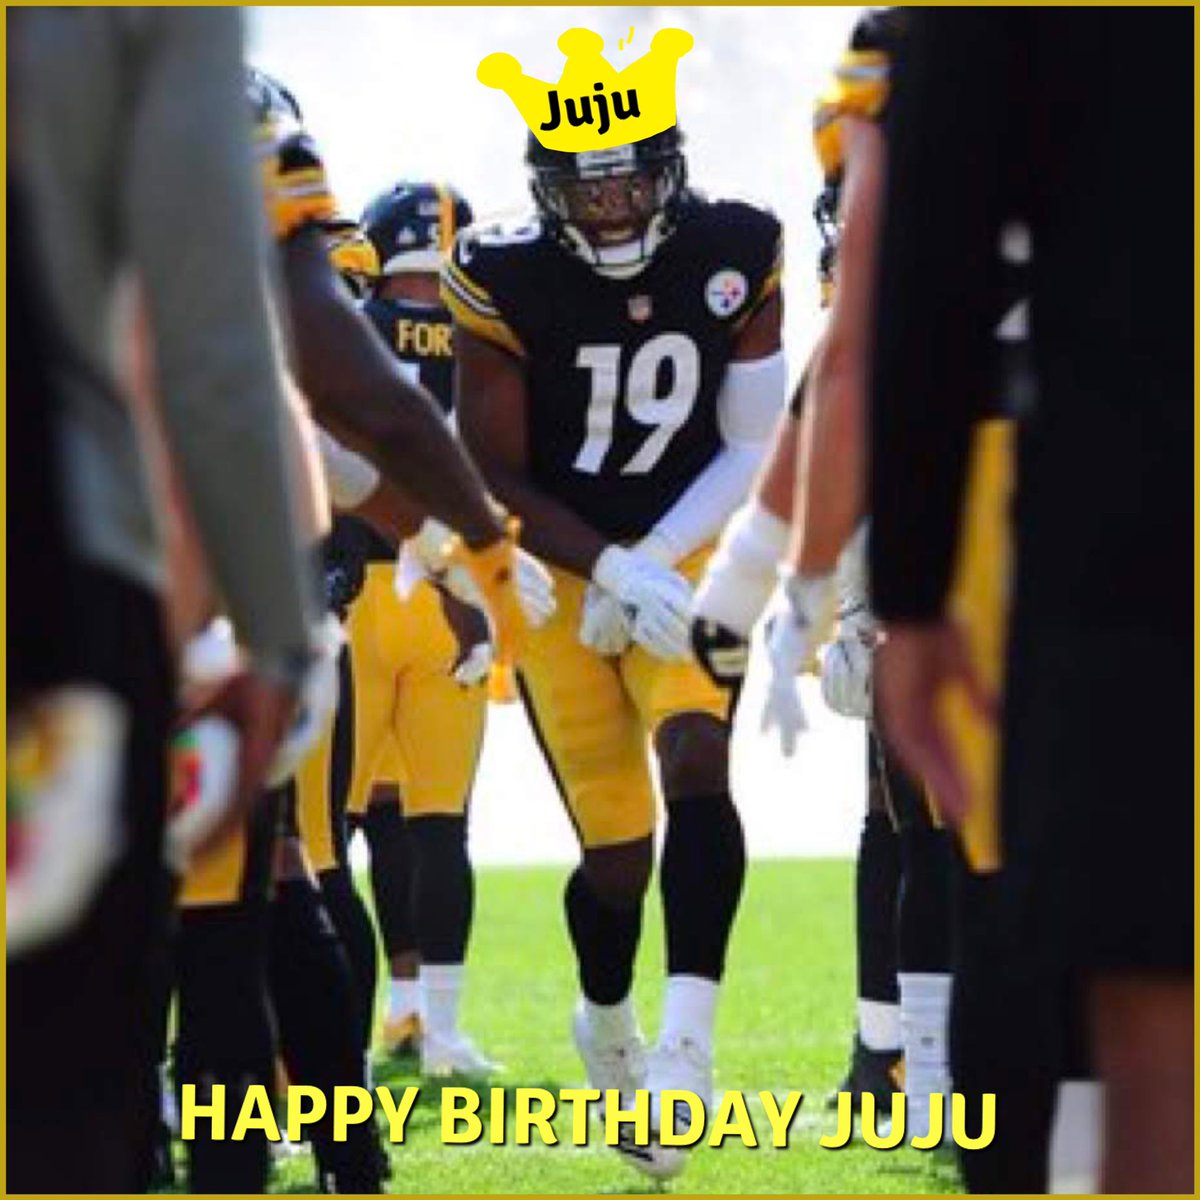 Happy Birthday, young King! 🤴🏾 give yourSELF a present today 😆 Get that WIN 💯 .@TeamJuJu Steelers #JujuSmithSchuster #HereWeGo  #Steelers